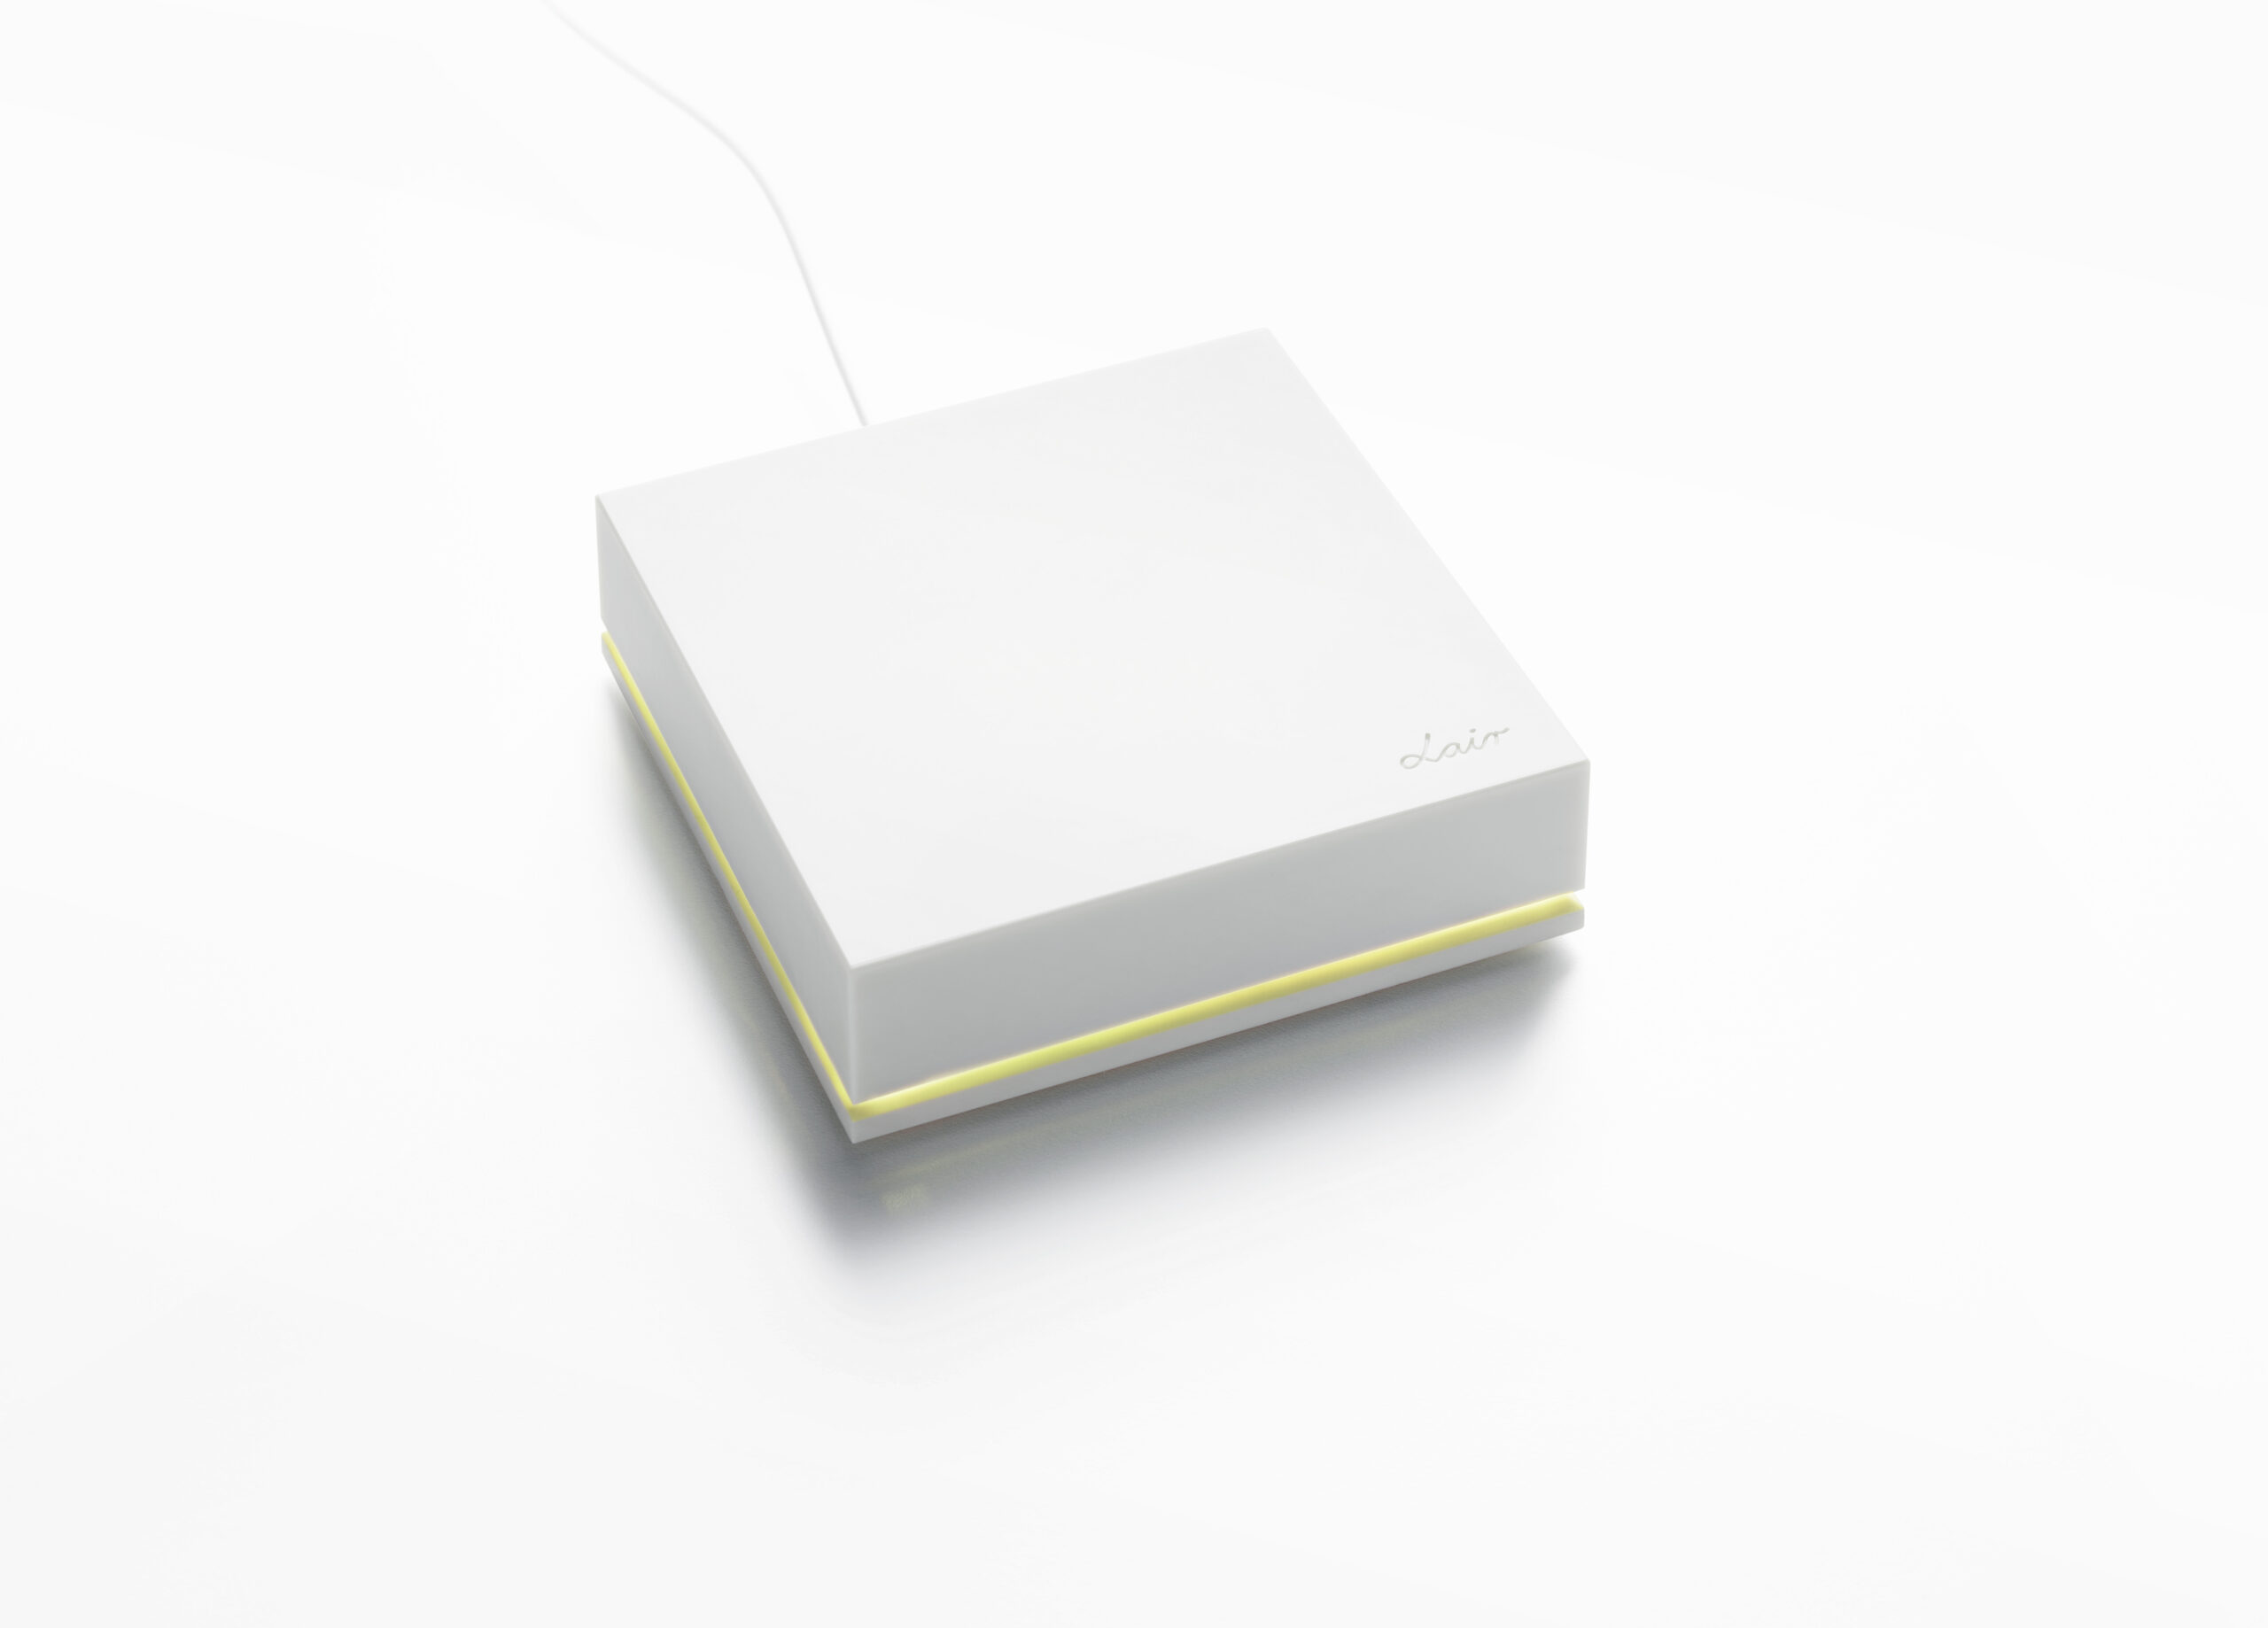 Lair_Product_01_yellow_2